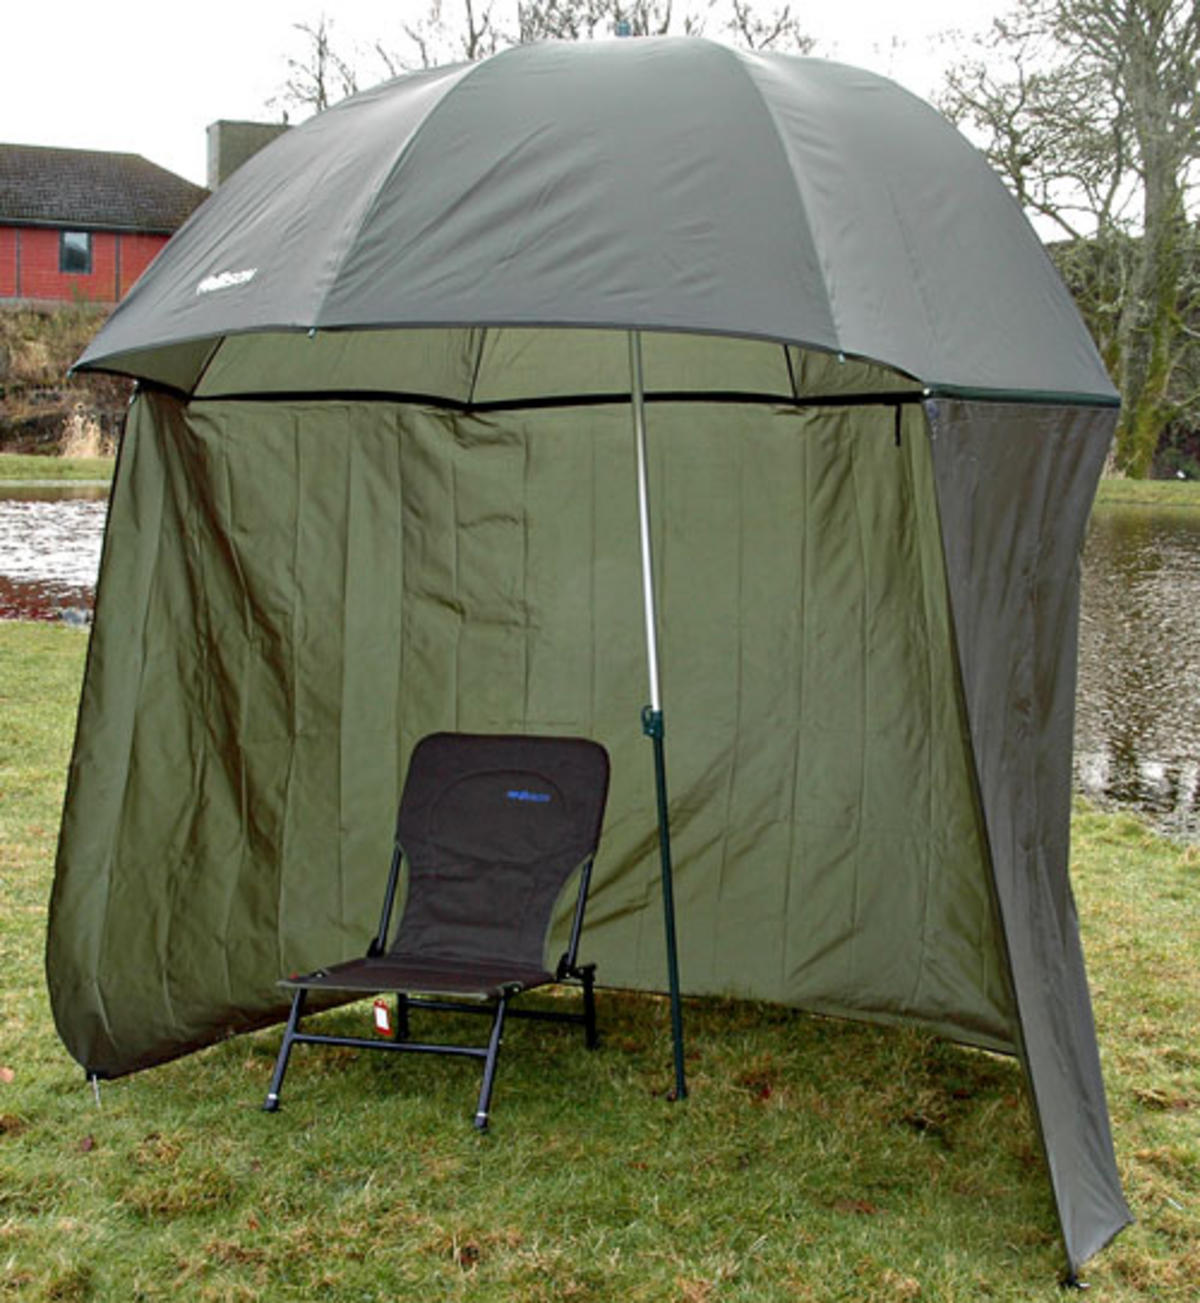 ice fishing chair shelter boss black leatherplus executive 98 quot 2 5m bison top tilt umbrella brolly